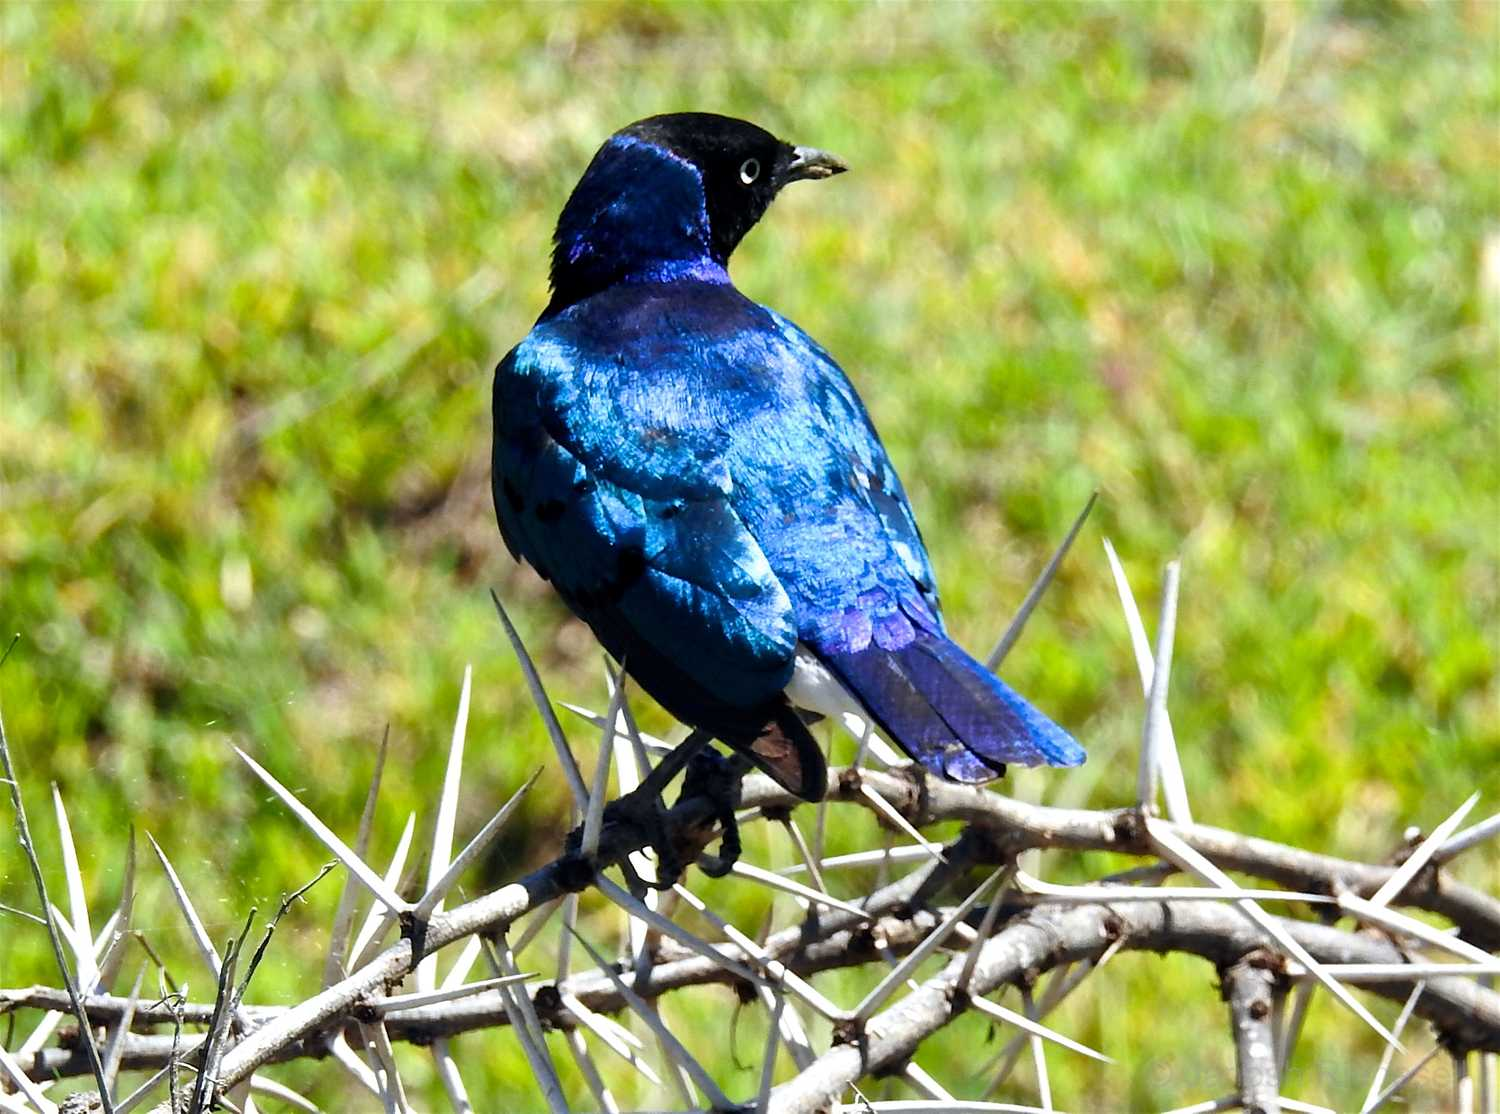 Tanzania Superb Starling